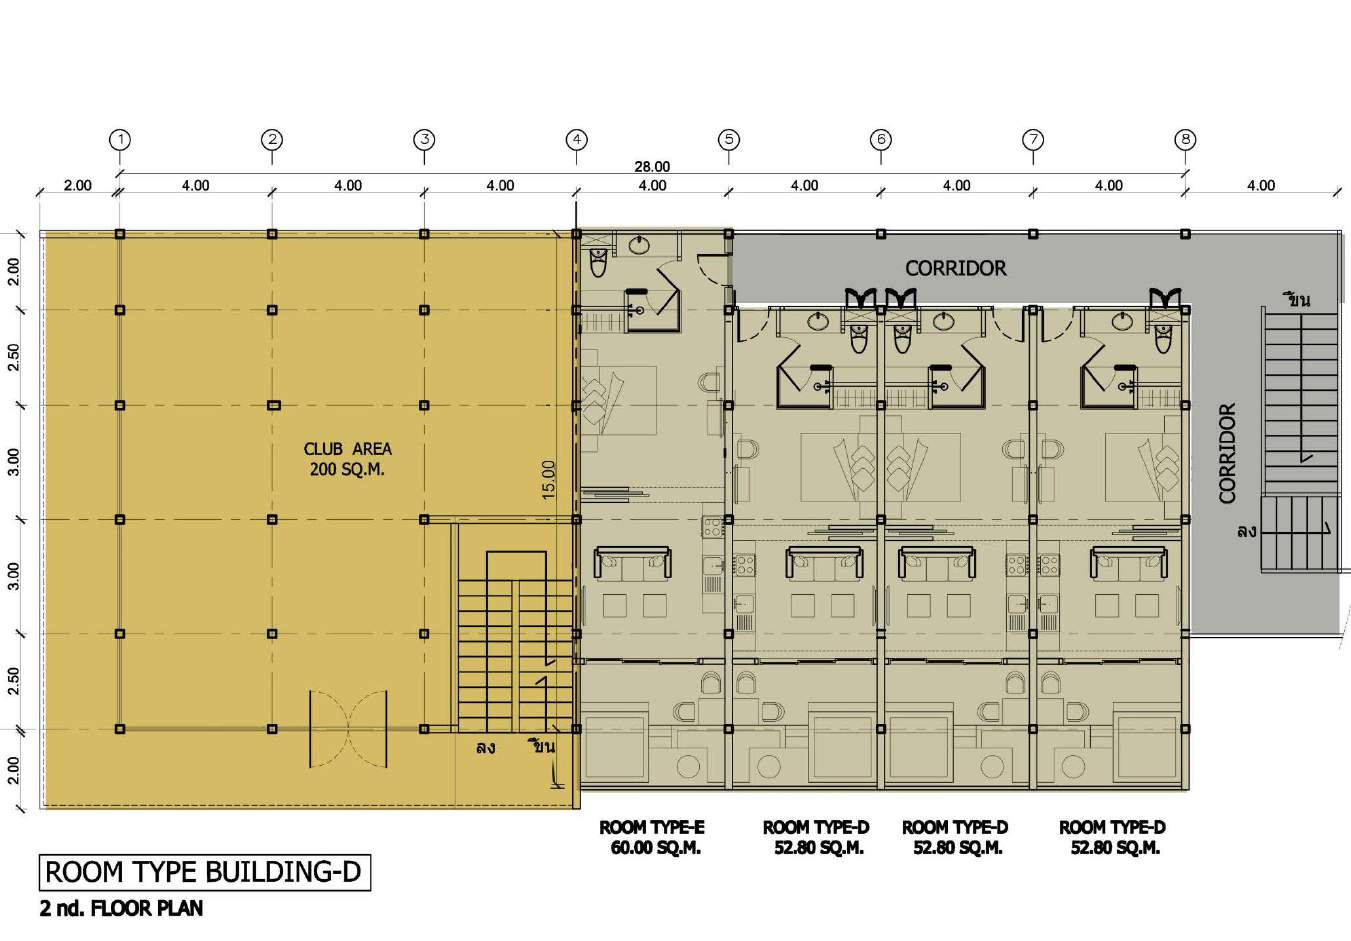 Phuket Holiday Services The Bay And The Beach Club Floor Plan Building D 2nd Floor